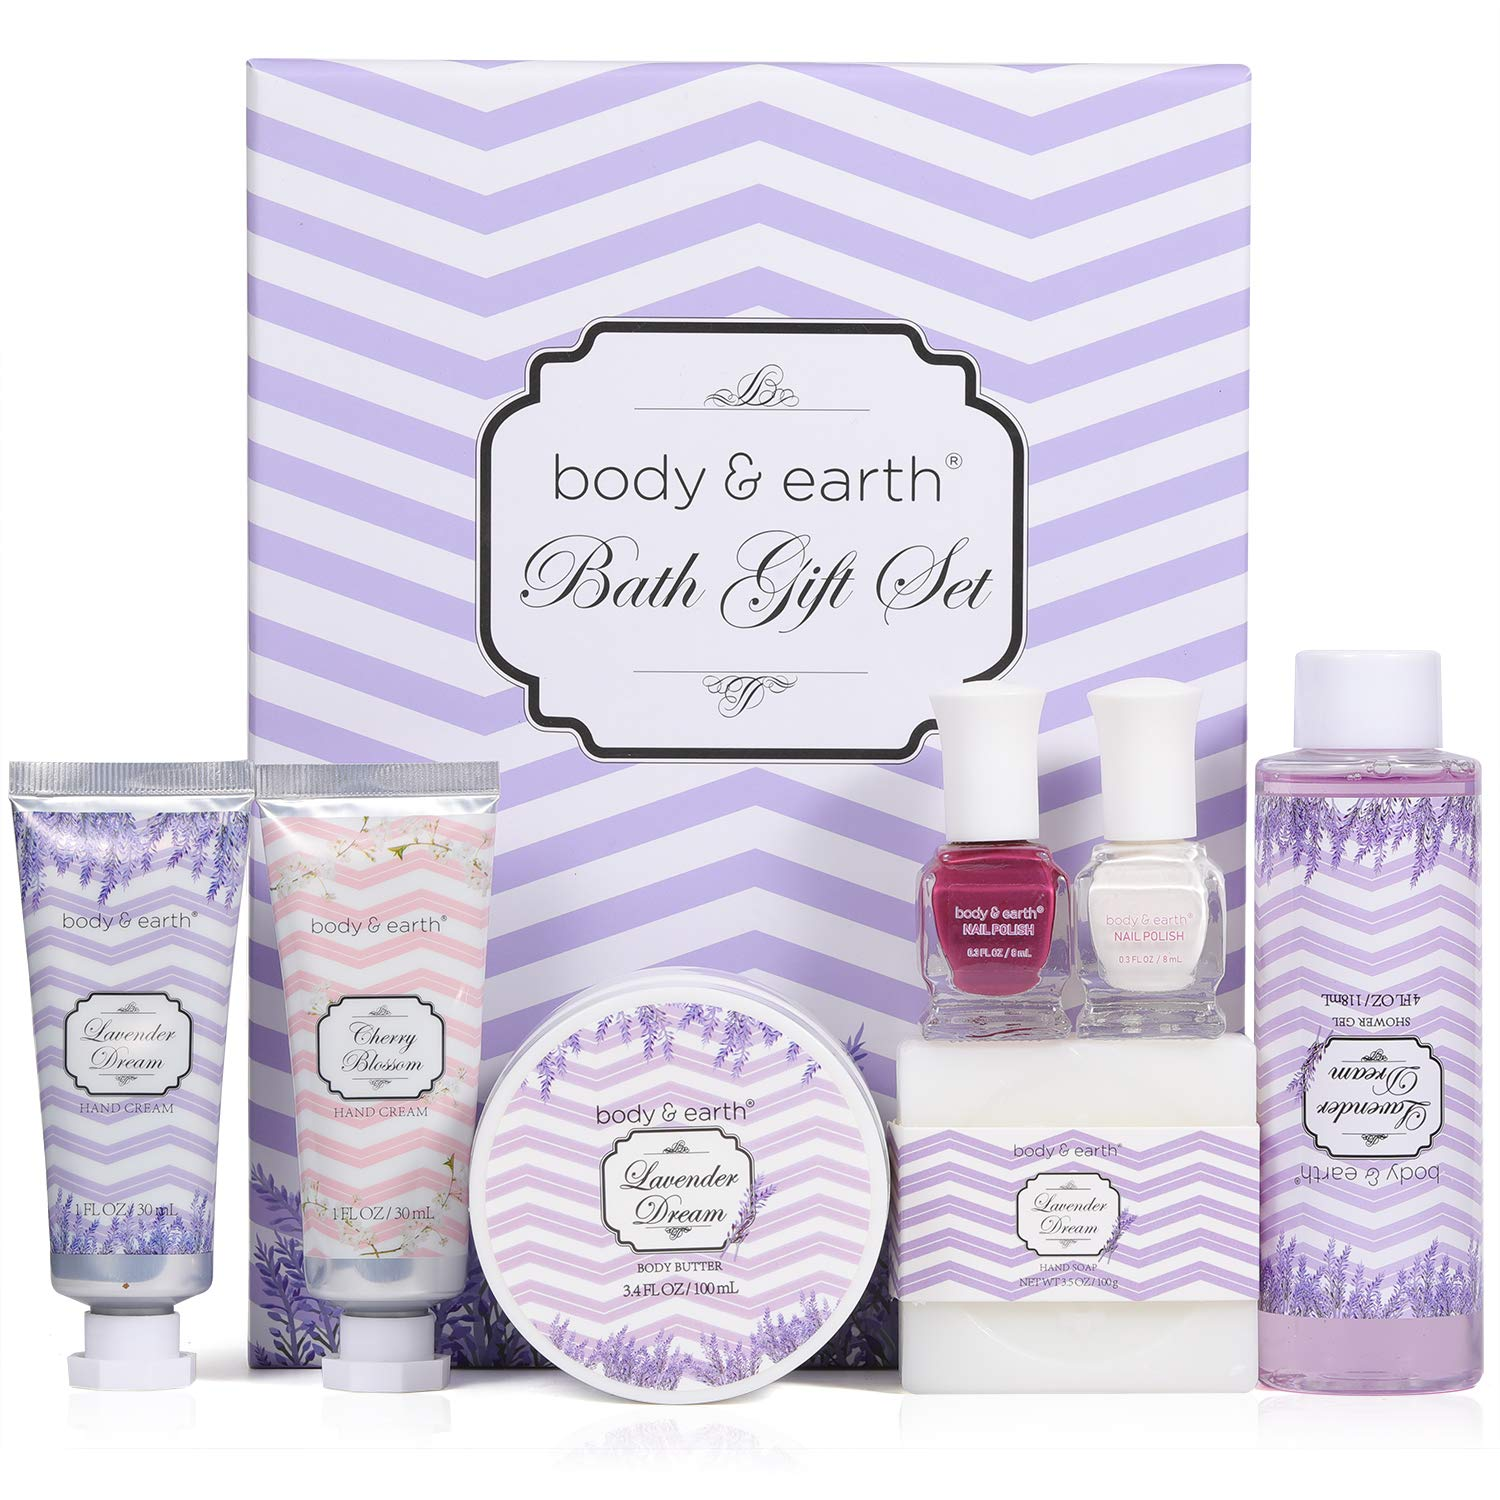 Spa Gift Box for Women,Body & Earth lavender Scented Luxurious 5 Piece Bath Set for Women Gifts Include Shower Gel, Hand Creams, Body Butter and More Gift for women